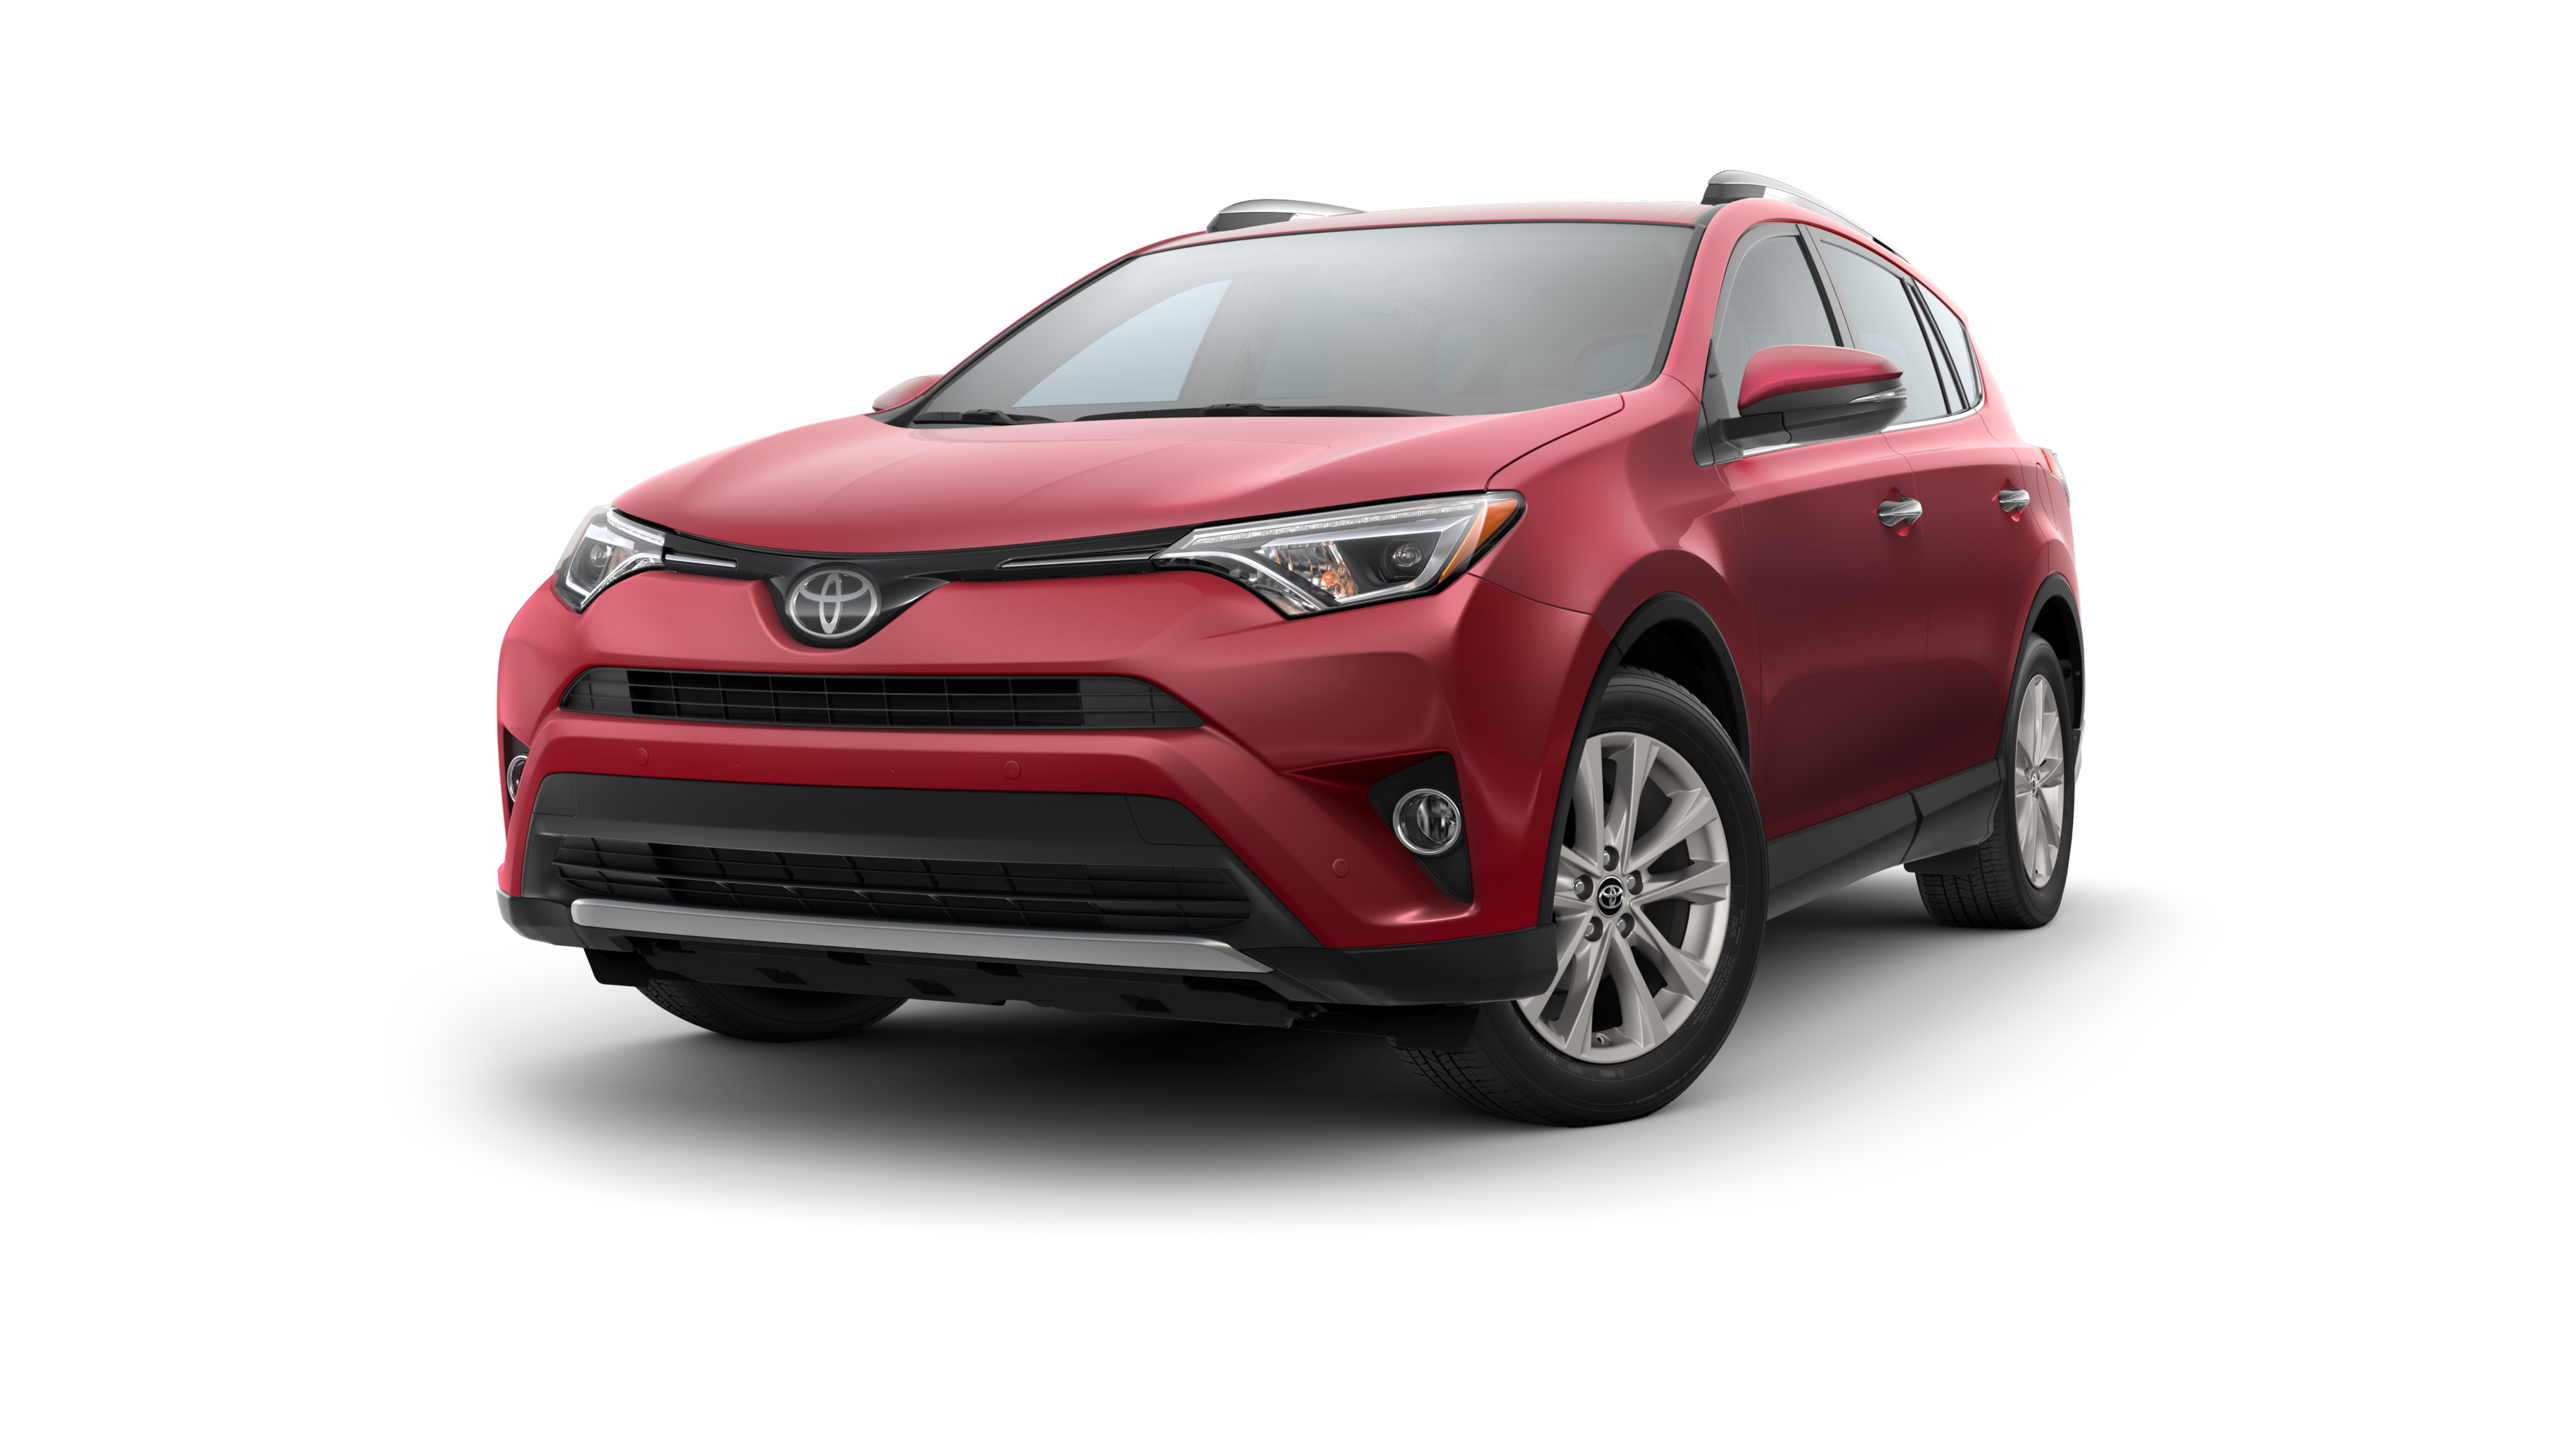 Review of 2018 Toyota Rav4 Here at Larry H Miller Toyota Lemon Grove near San Diego